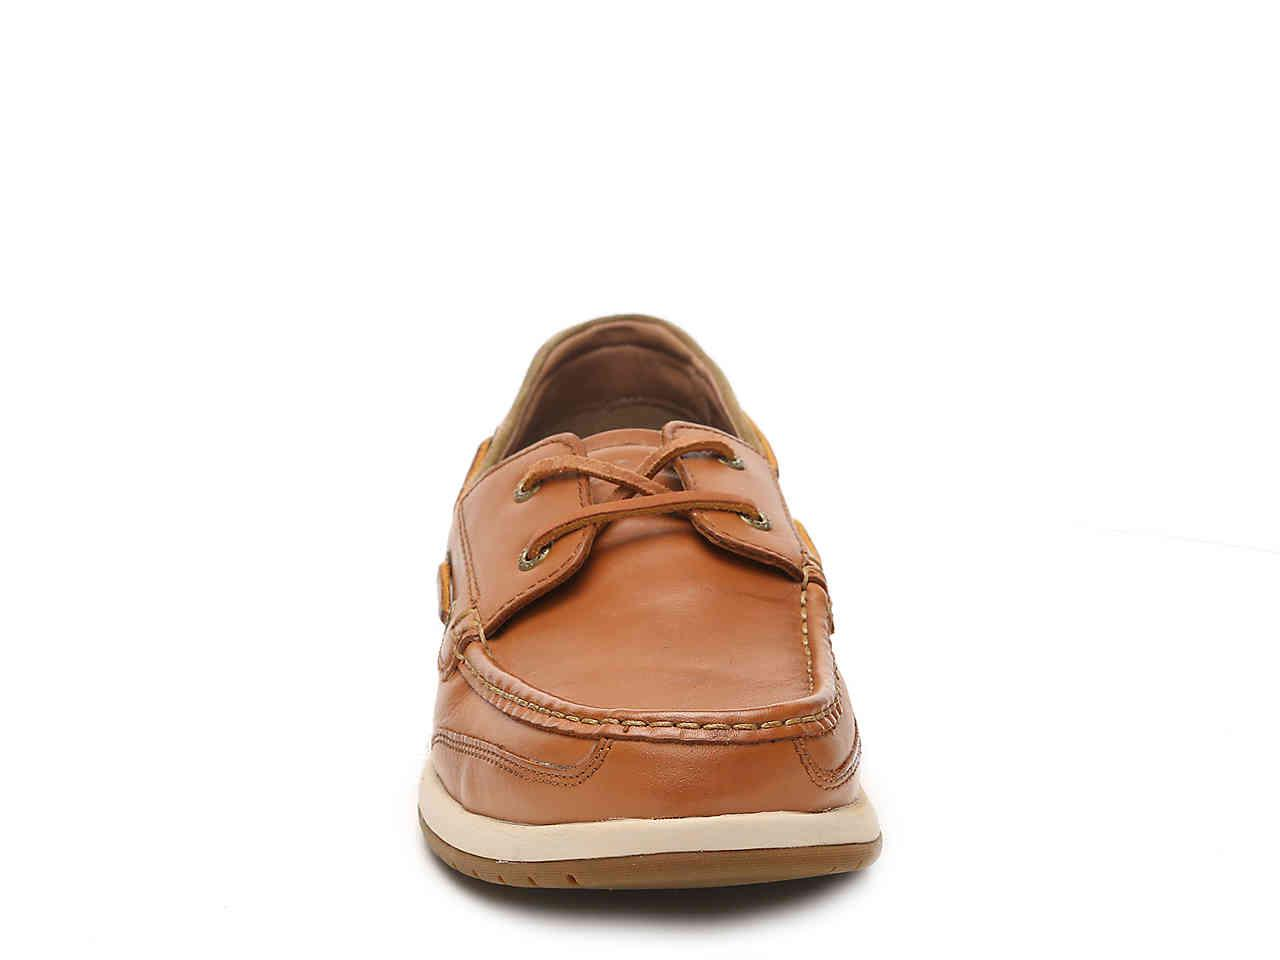 098e8486c7 Lyst - Tommy Bahama Land Lover Boat Shoe in Brown for Men